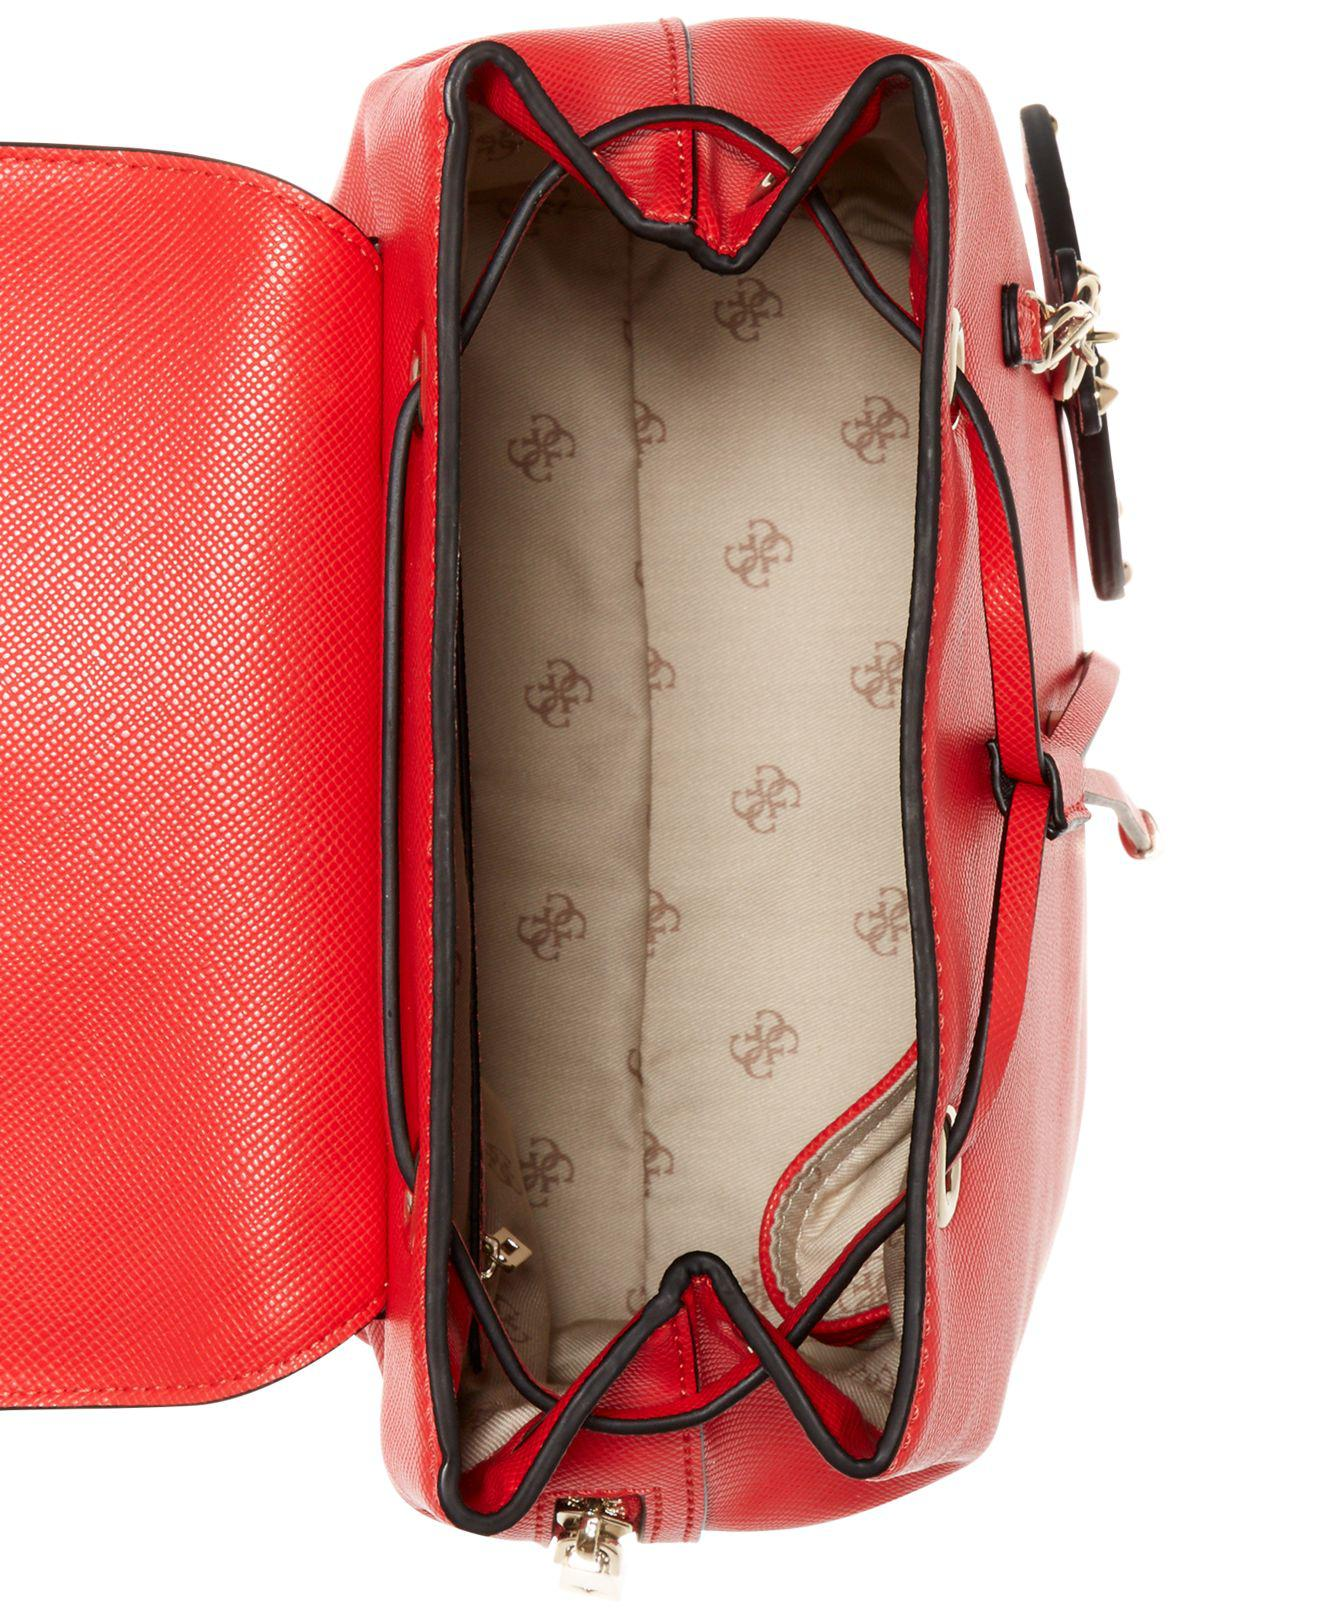 64f7b1deb8 Lyst - Guess Varsity Pop Logo Pin Up Small Backpack in Red